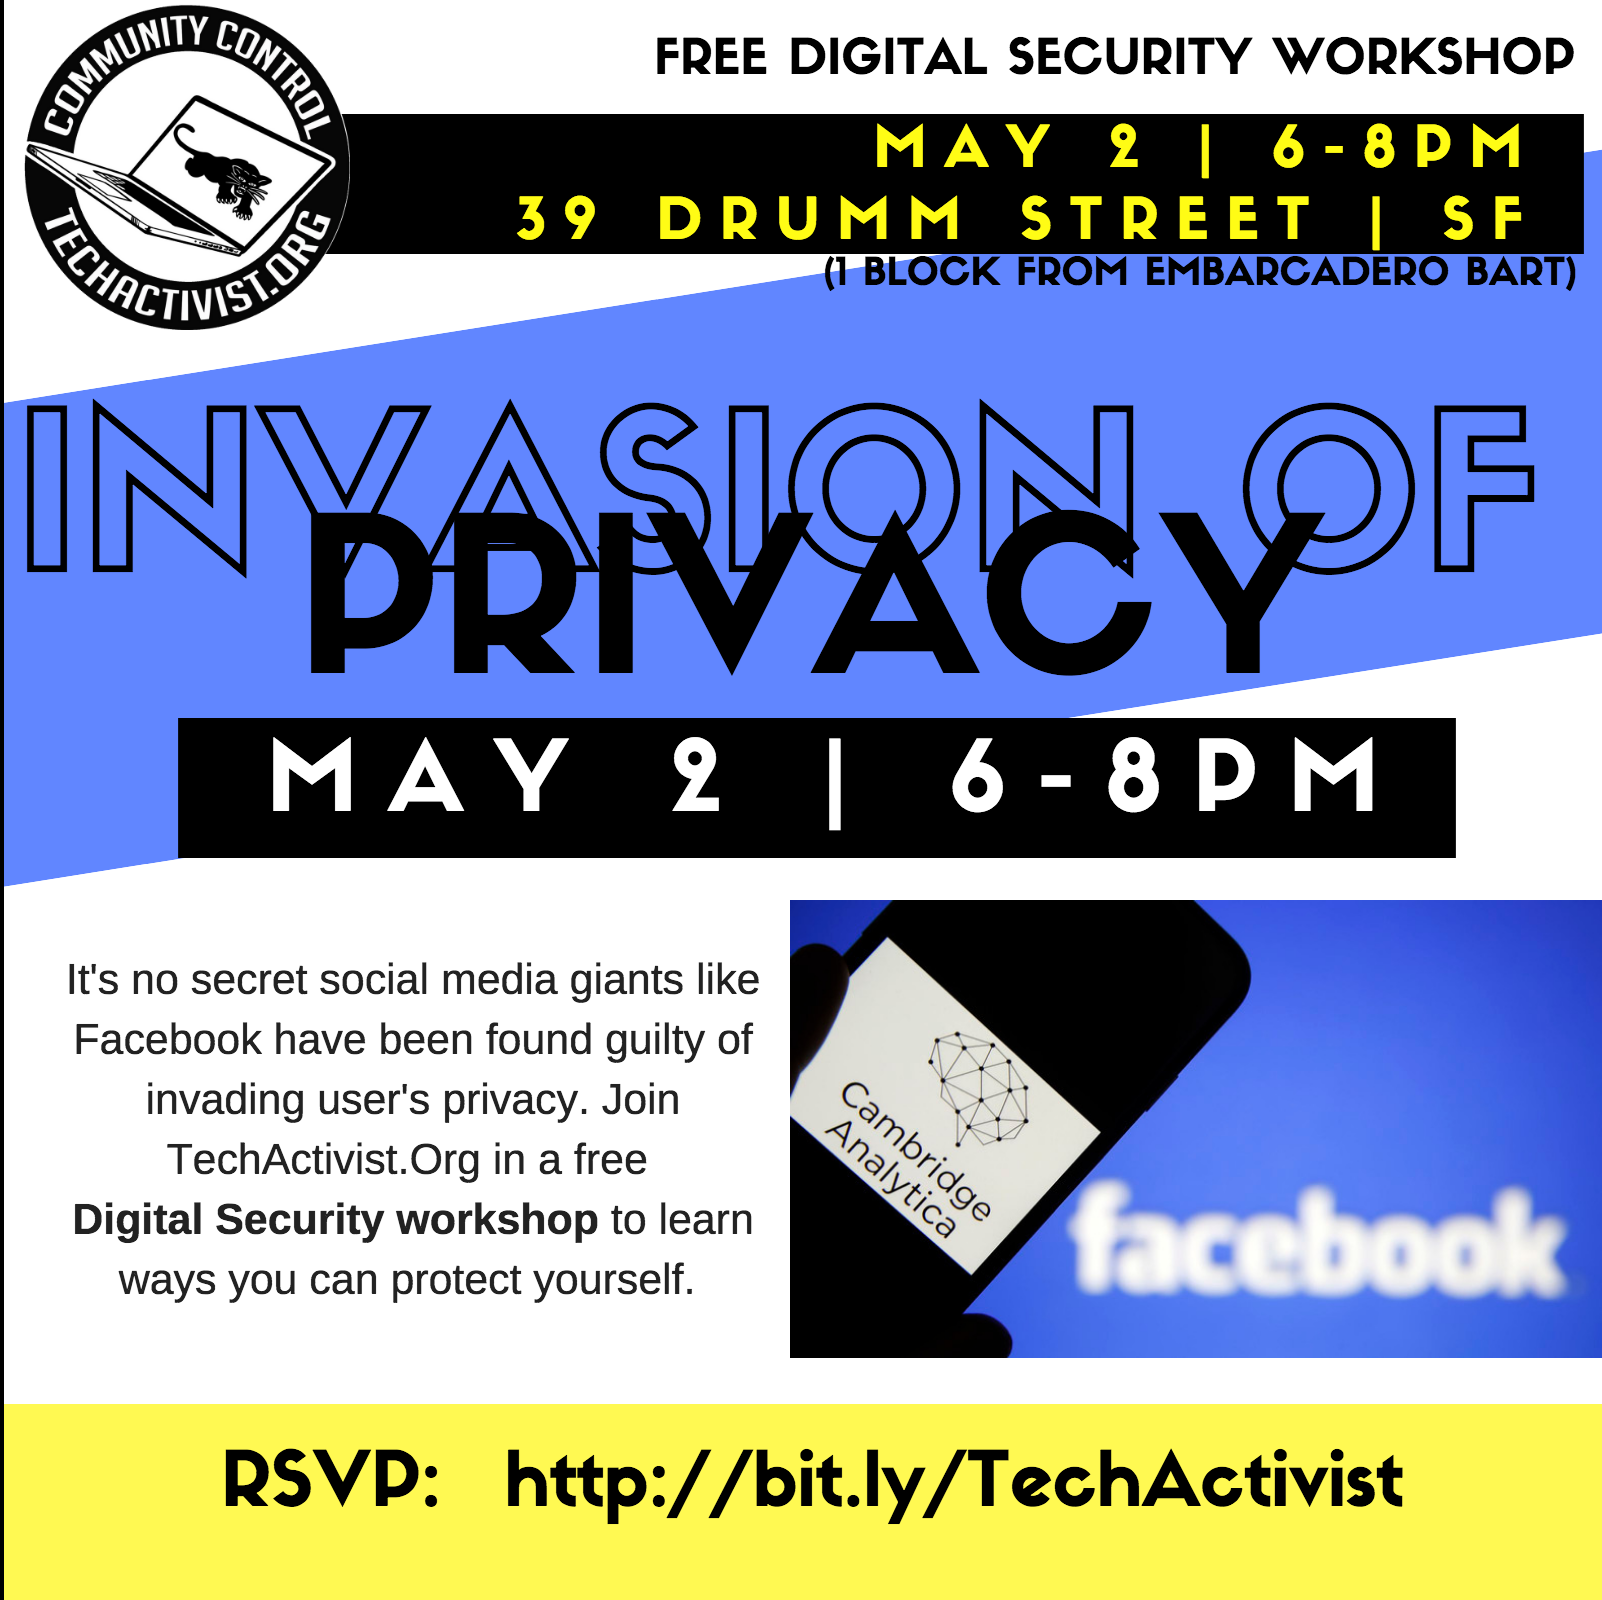 Invasion of Privacy - Digital Security Workshop @ ACLU of Northern California | San Francisco | California | United States